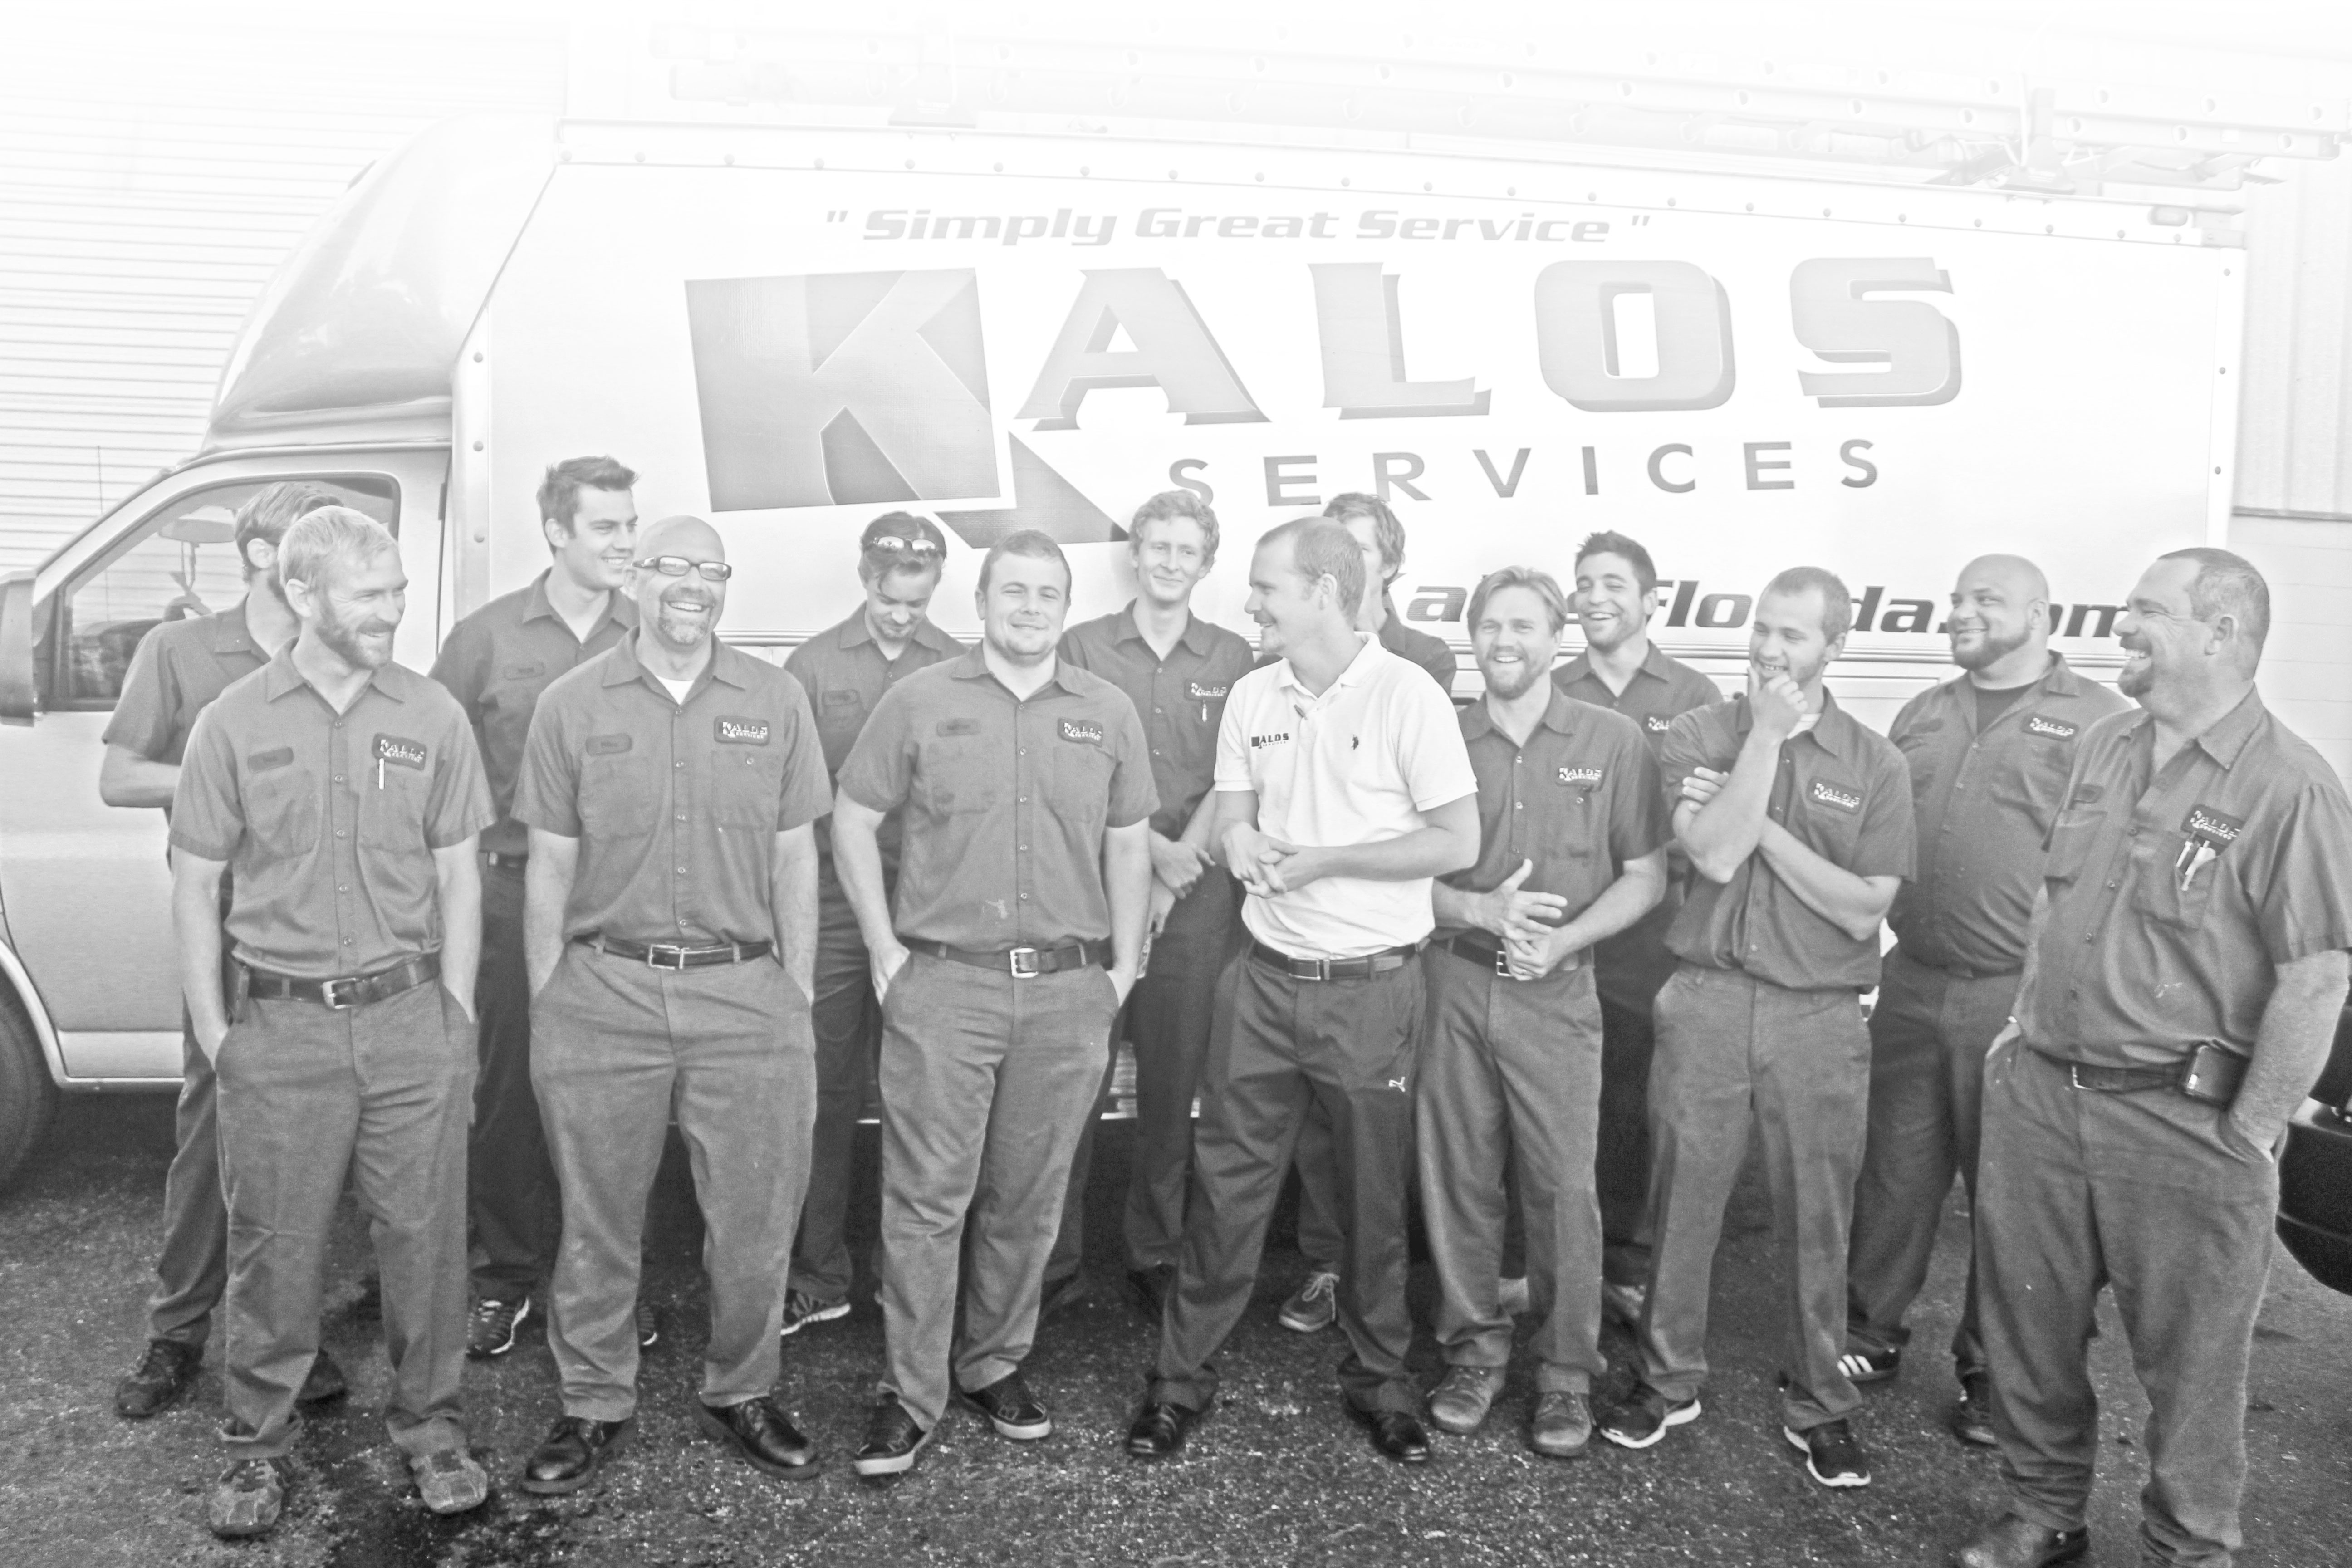 Kalos 101: Founding, Growth, and Vision